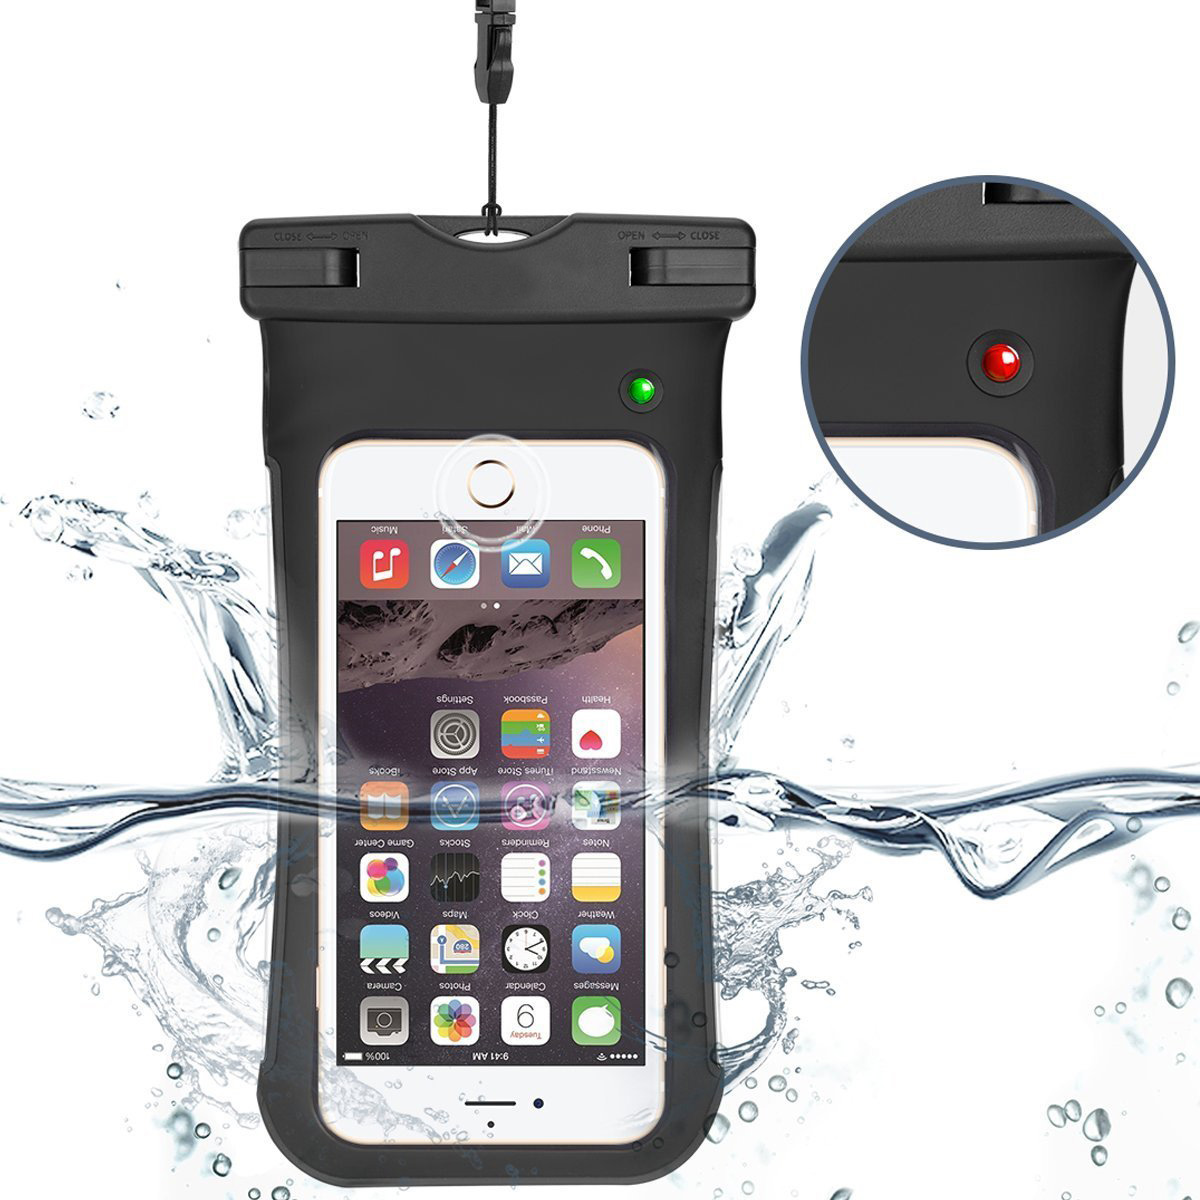 The World First Water Leakage Alarm System waterproof dry bag for iPhone,Samsung,Huawei